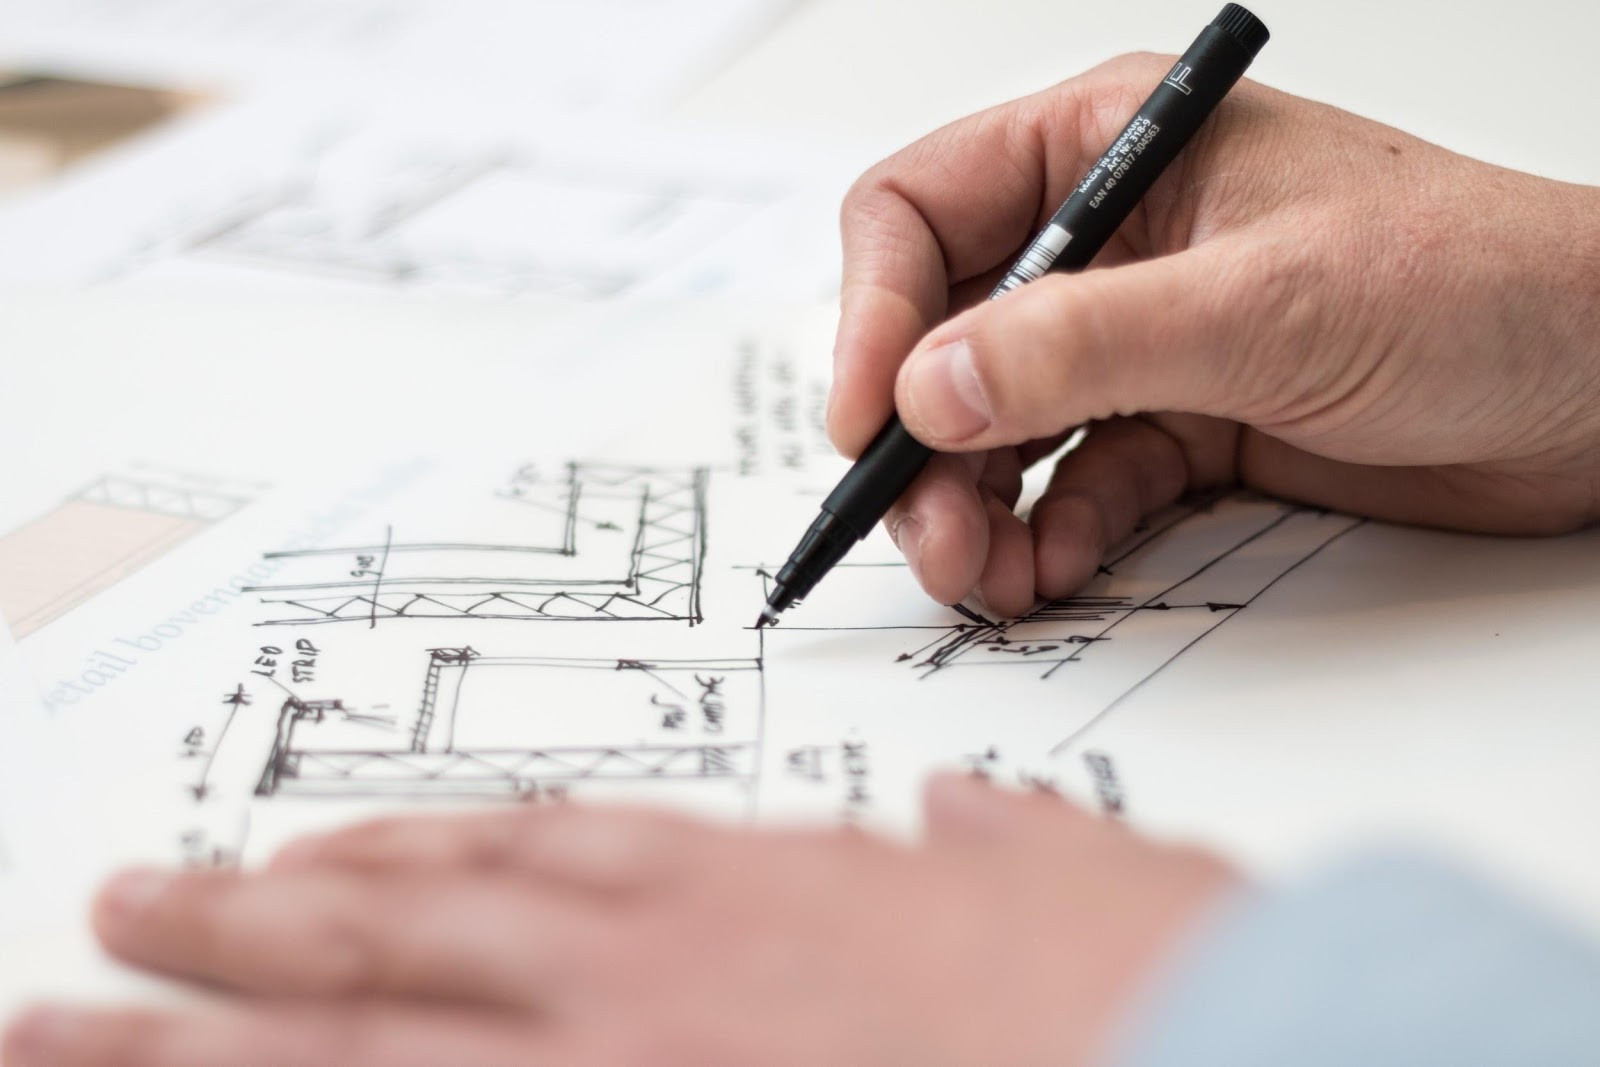 HOW TO DESIGN AN ARCHITECTURE PROJECT